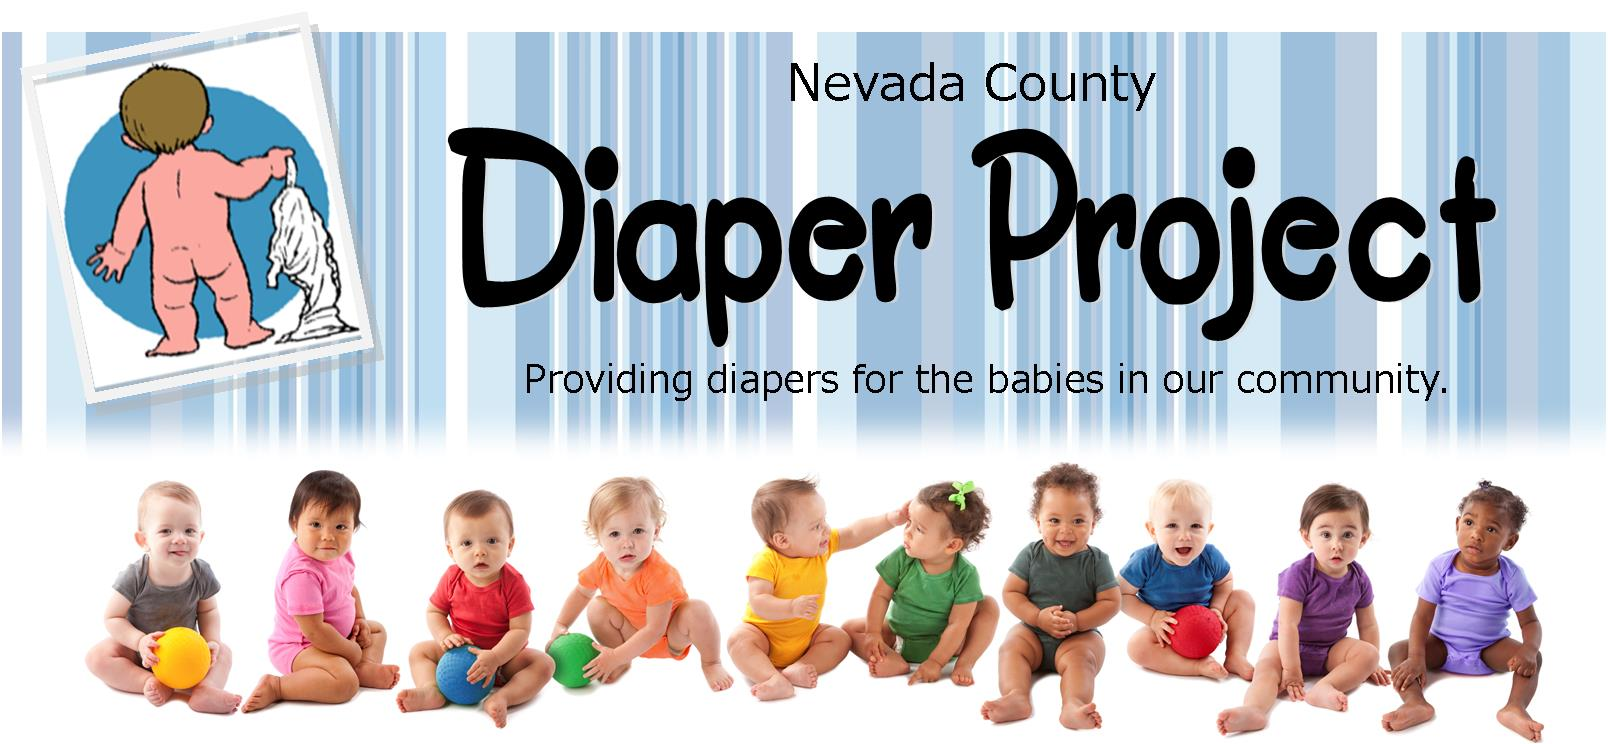 Nevada County Diaper Project